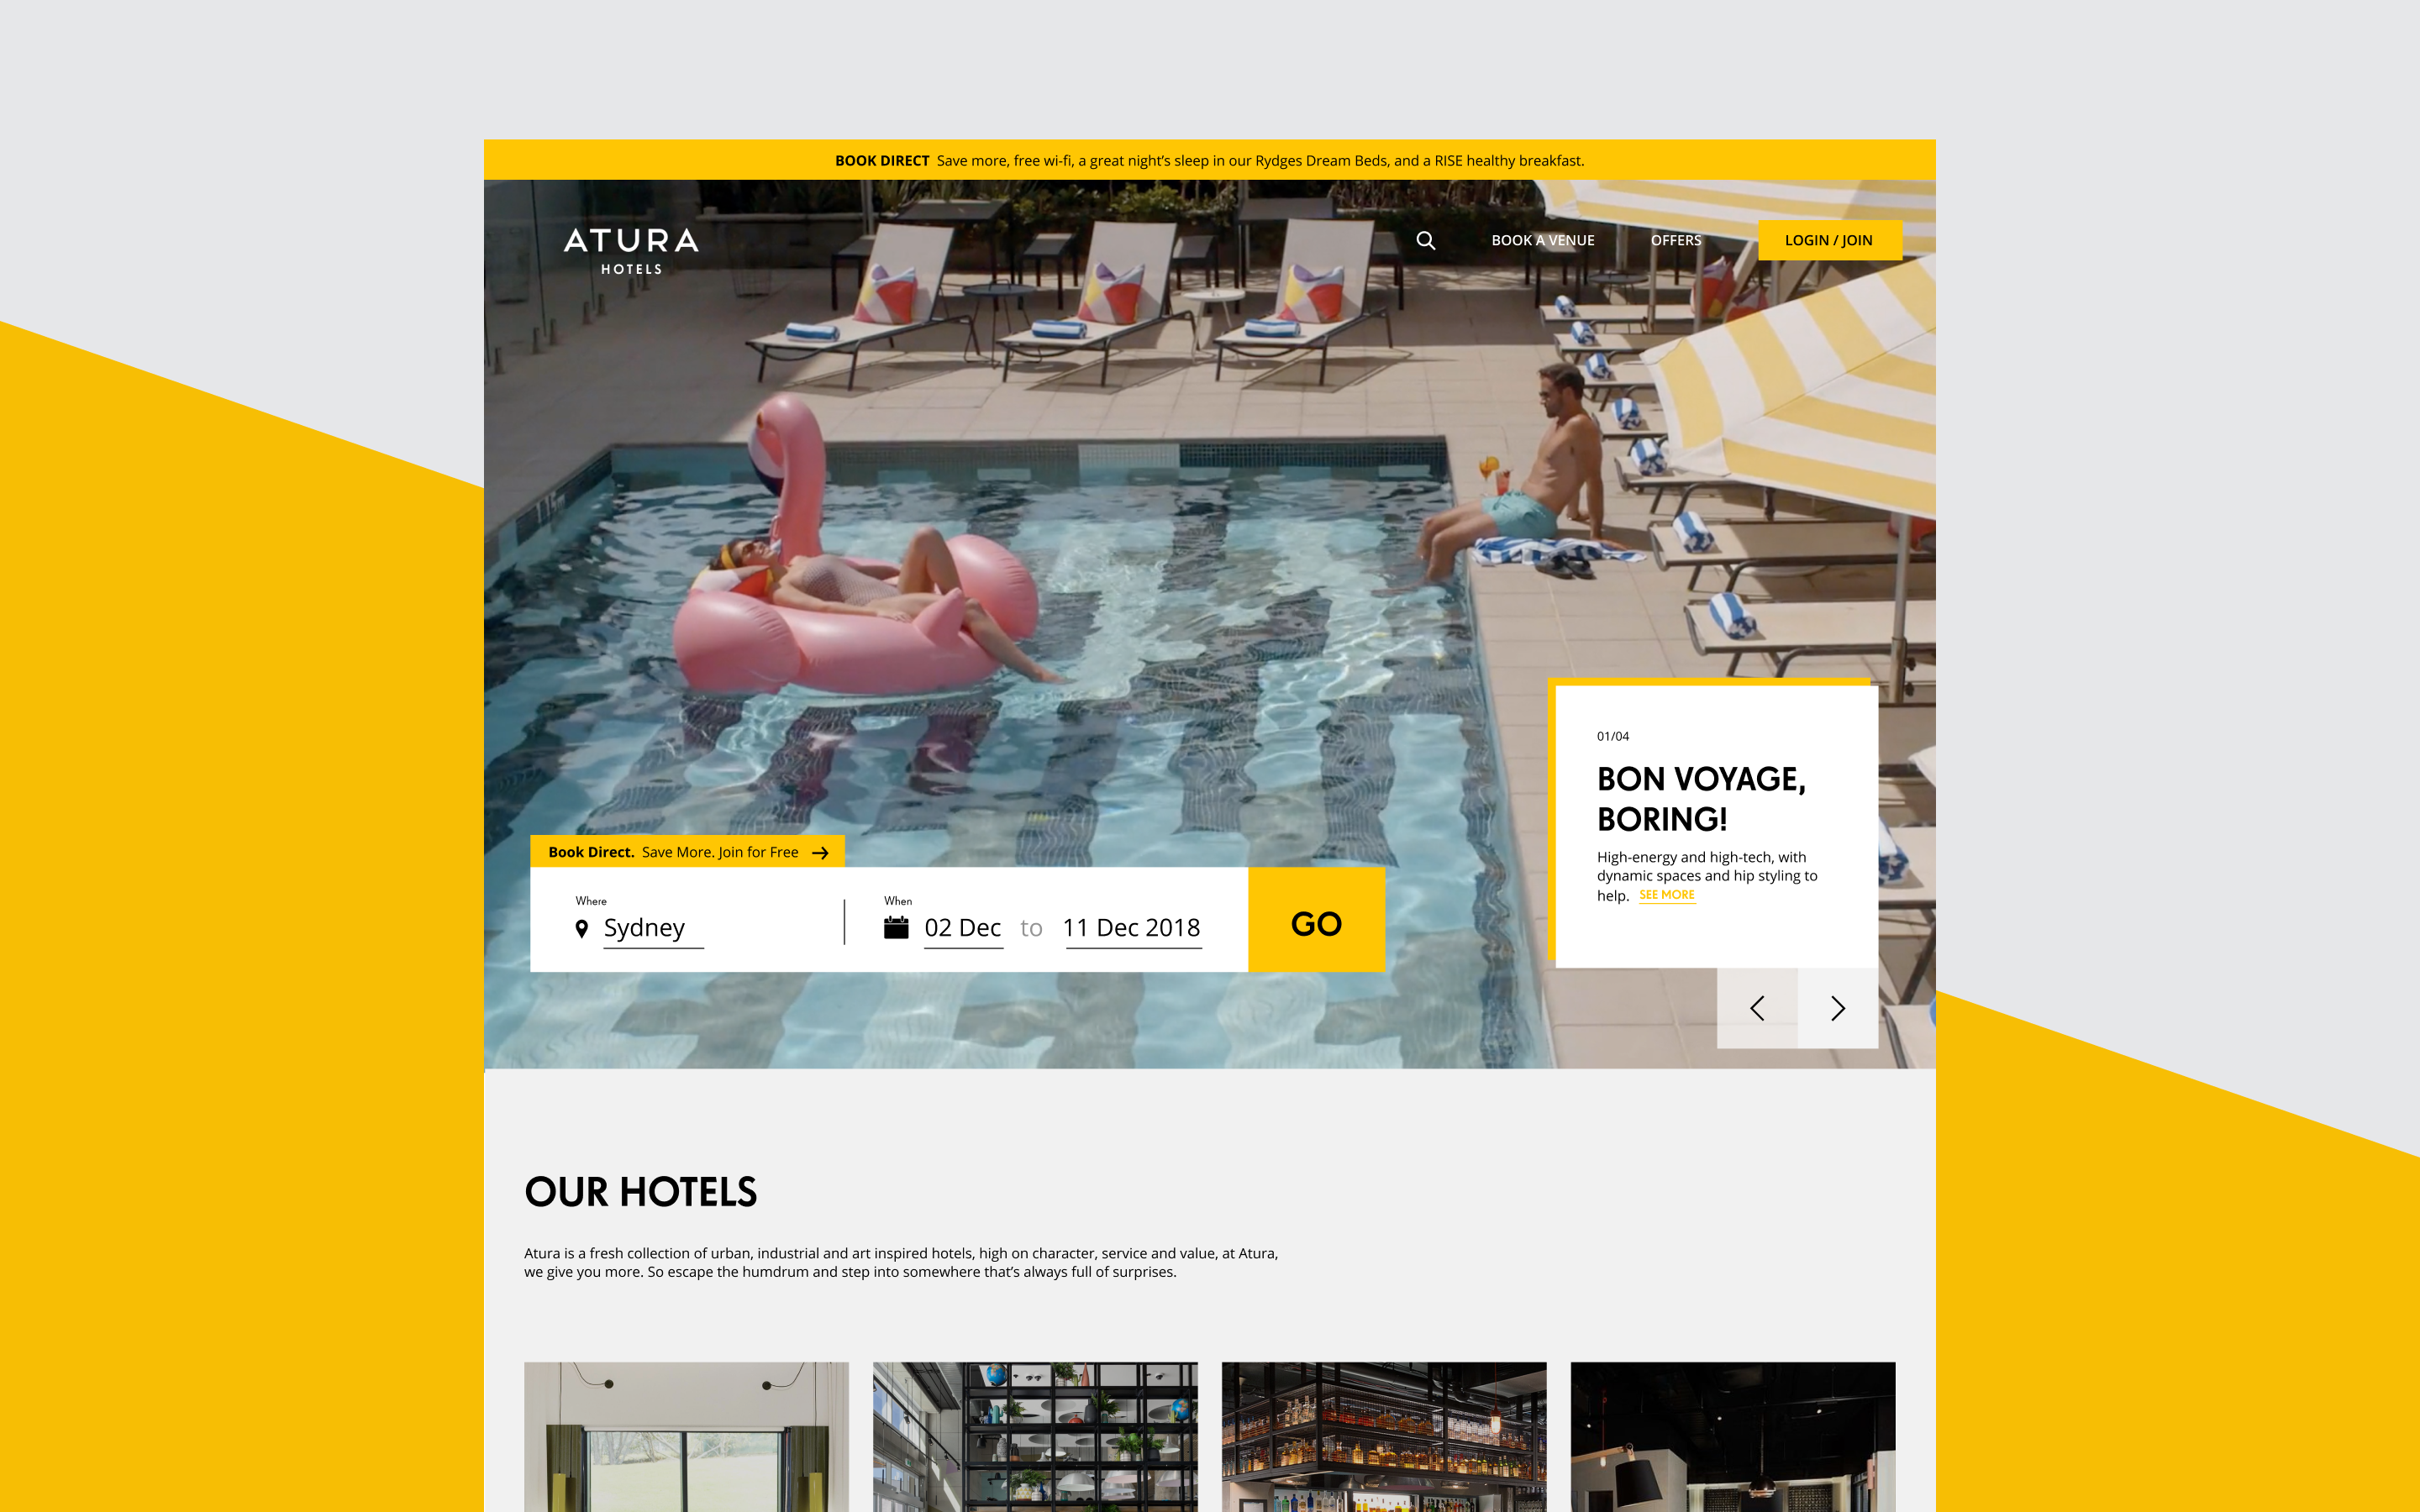 EVENT Atura new website design, featuring a clear information hierarchy and large booking CTA